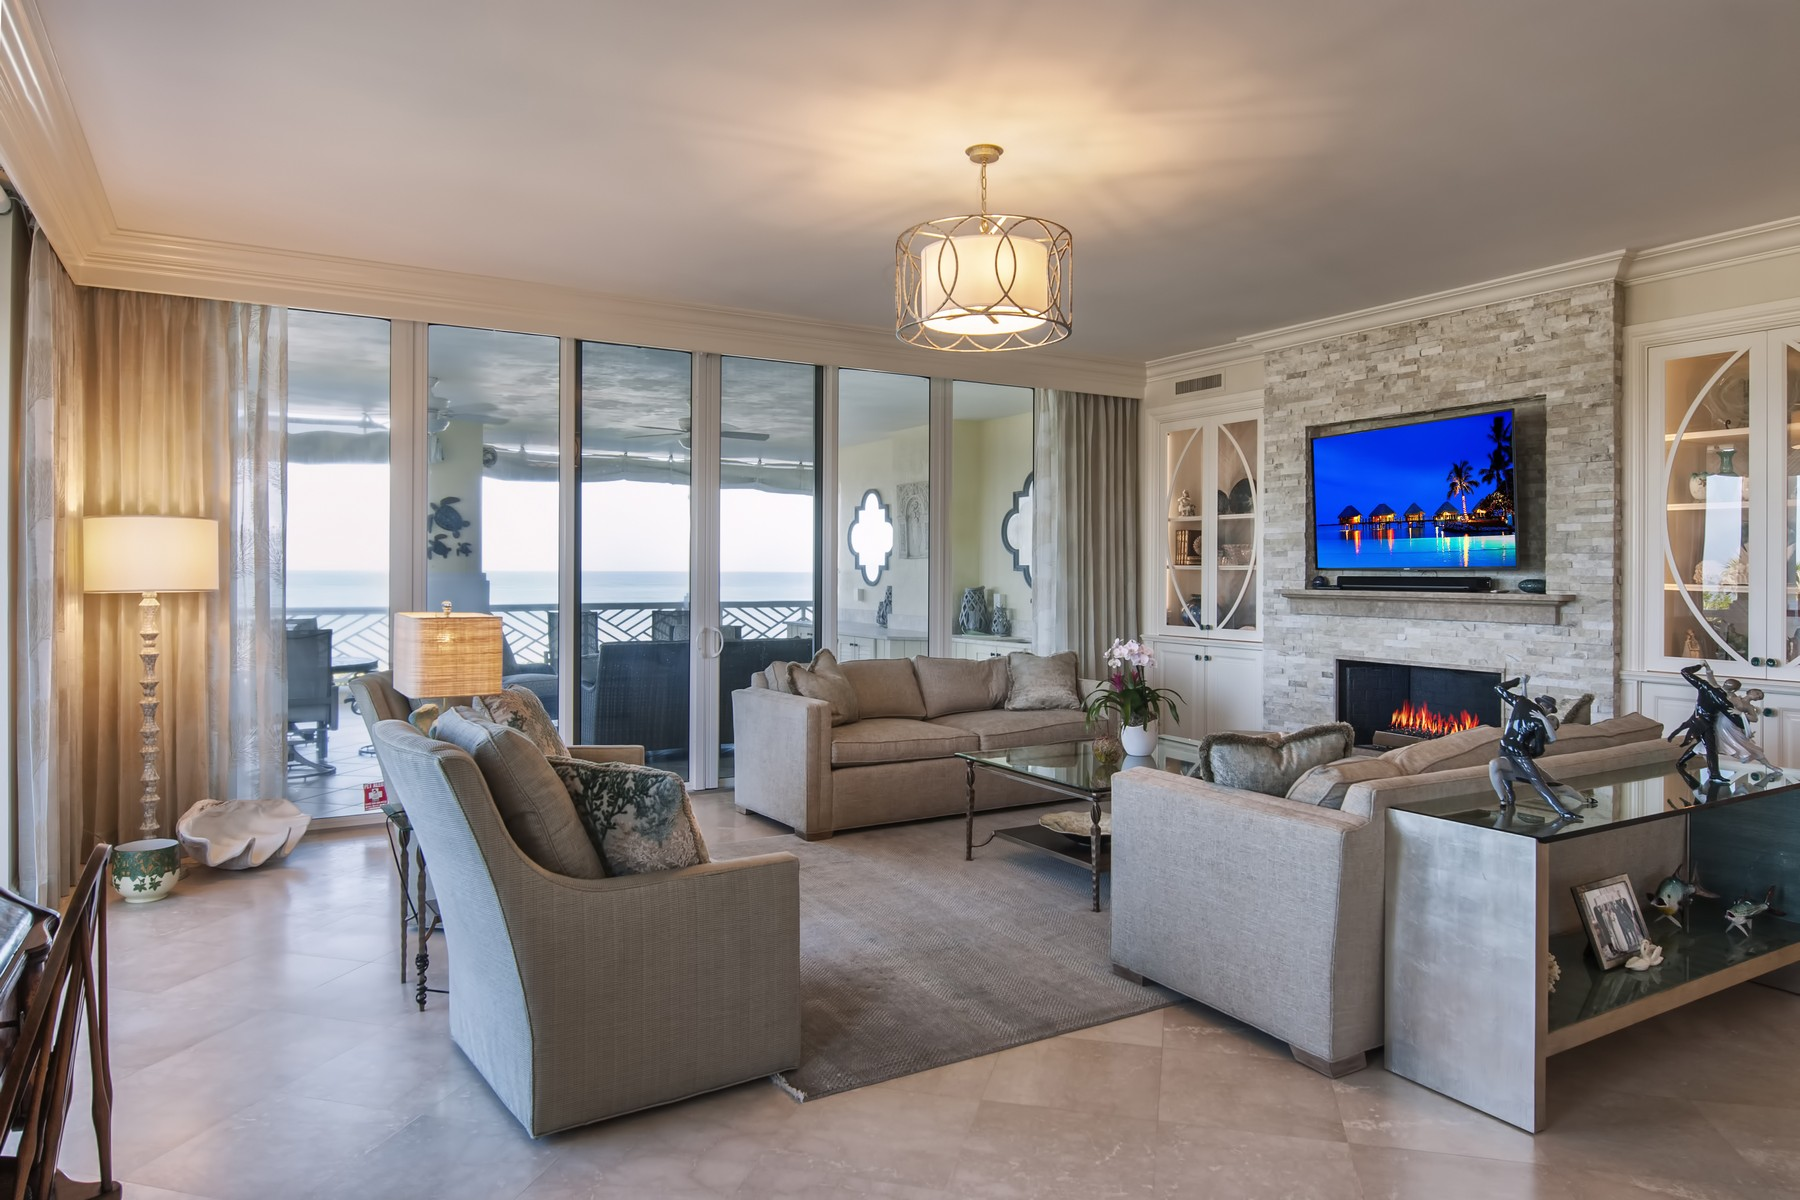 Property for Sale at The Finest in Oceanfront Concierge Living! 600 Beachview Drive # 2N Vero Beach, Florida 32963 United States